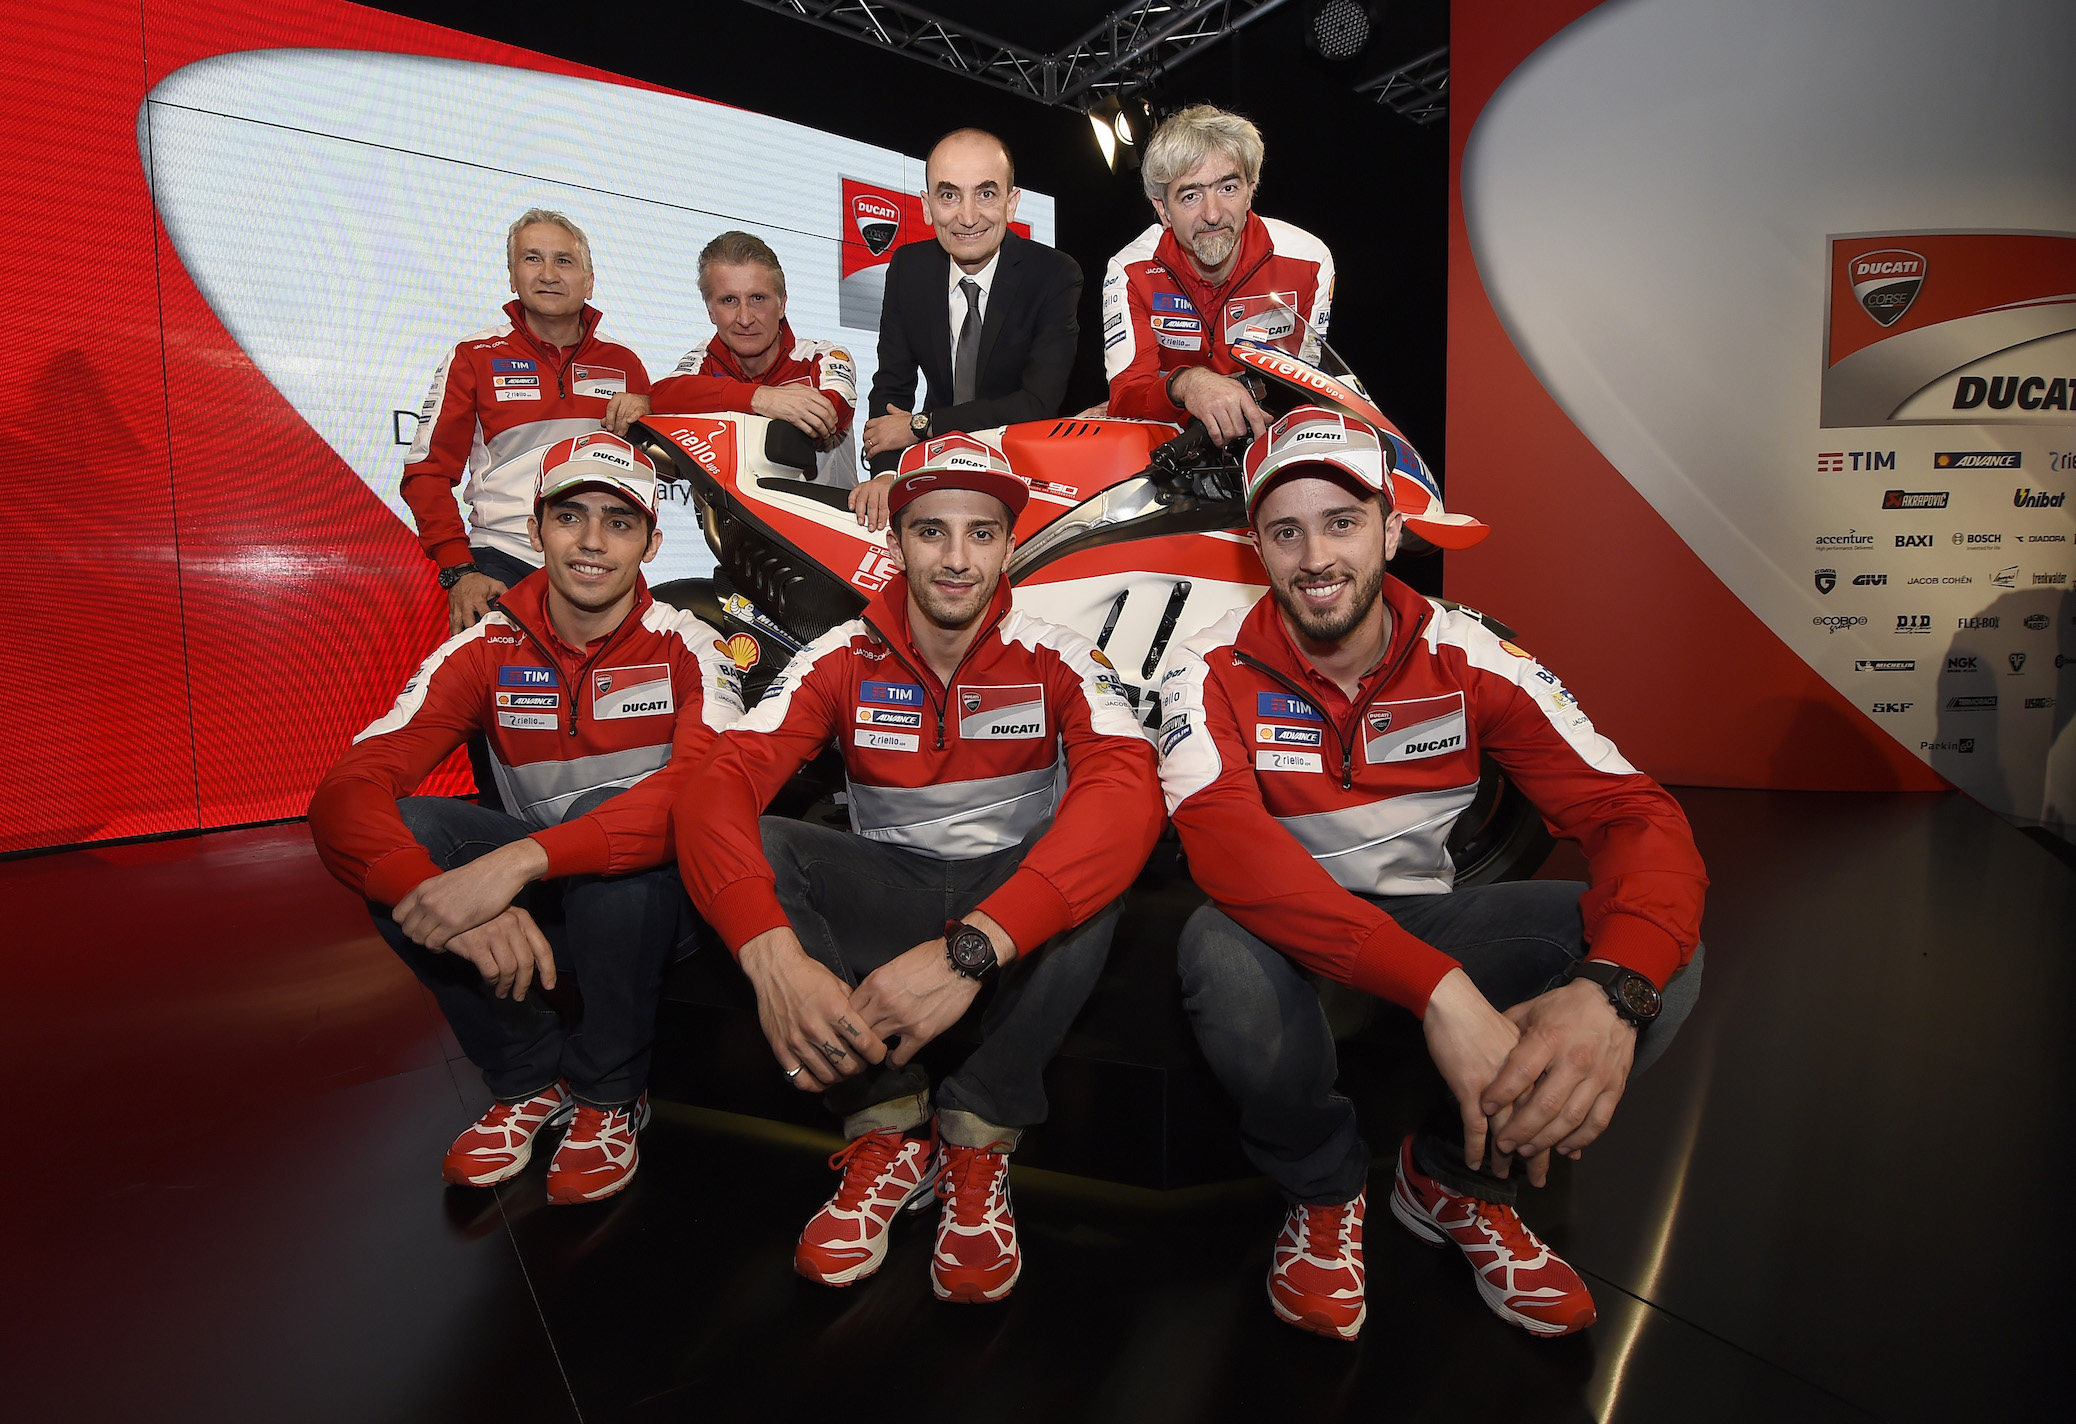 GIVI+-+NEW+SPONSOR+OF+THE+DUCATI+TEAM+AT+THE+MOTOGP%21